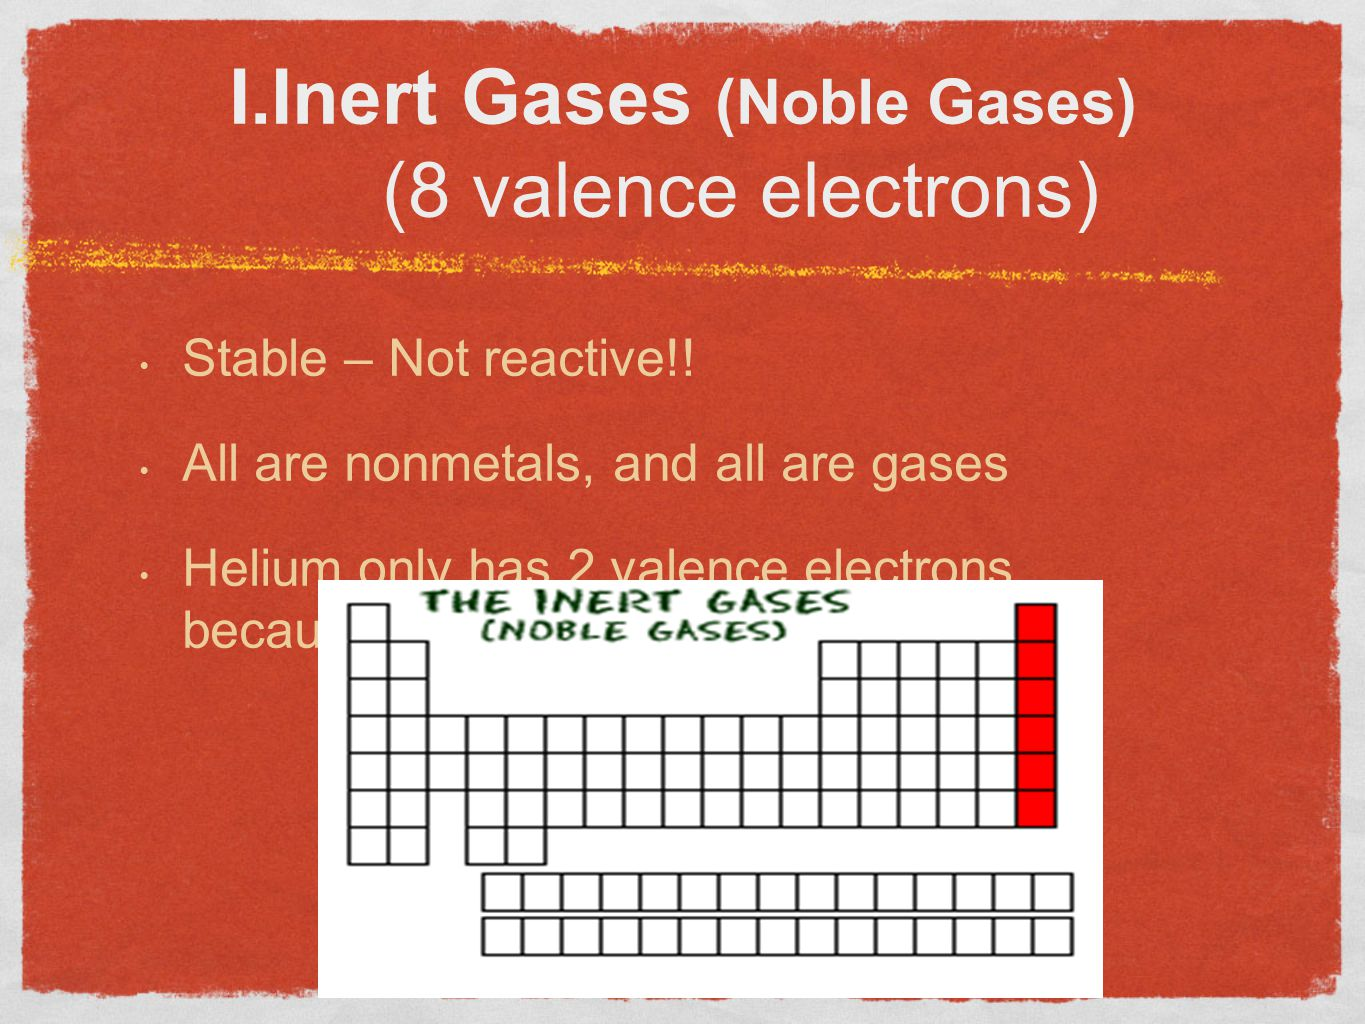 I.Inert Gases (Noble Gases) (8 valence electrons)